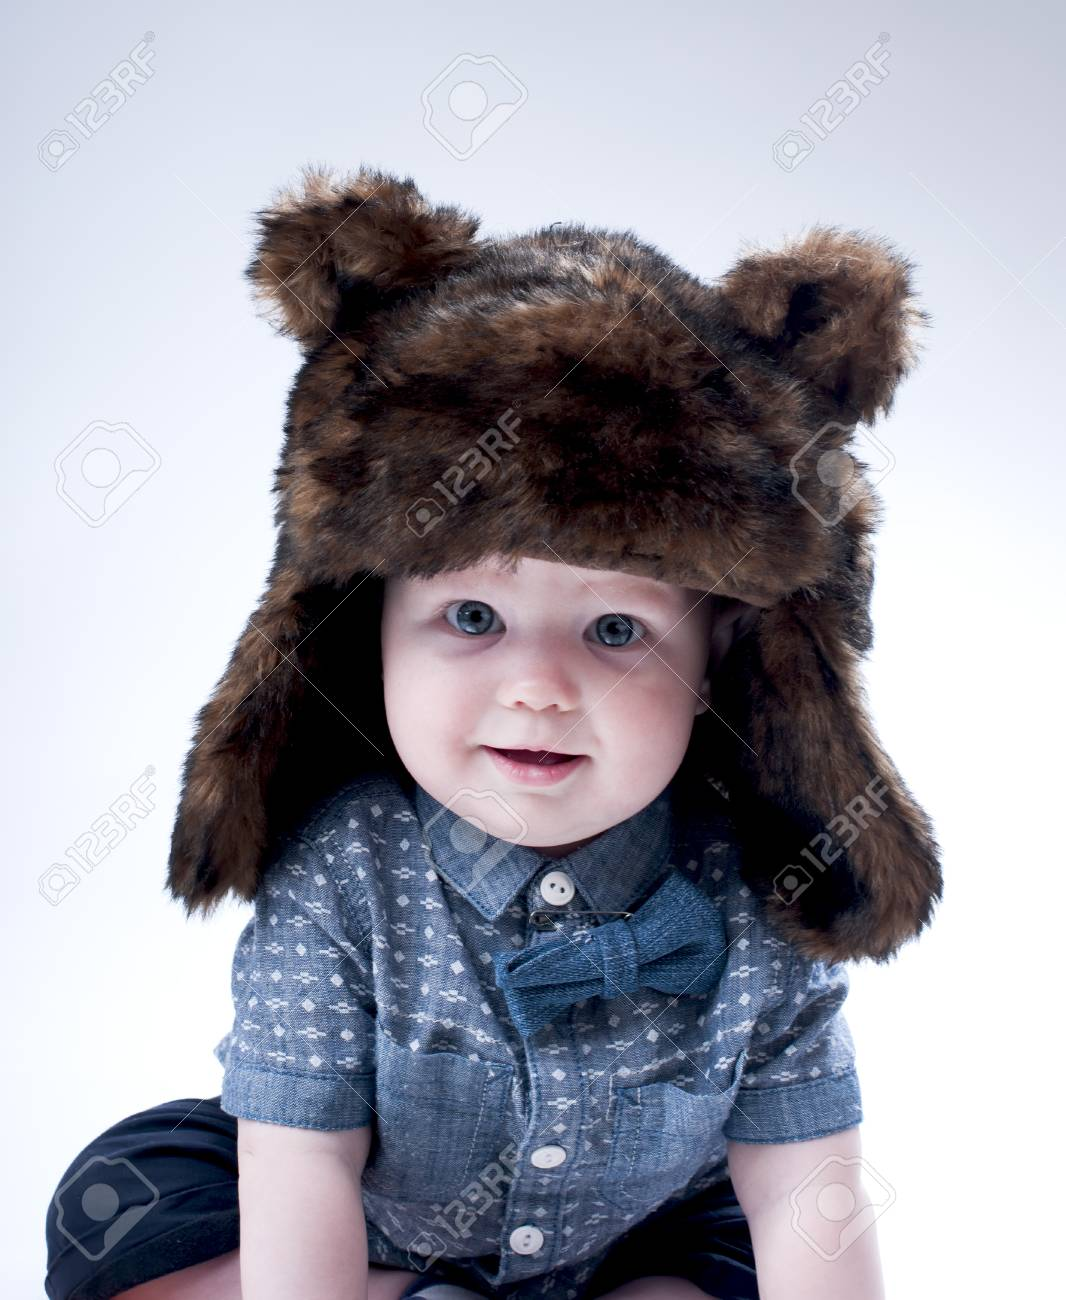 best quality new cheap watch Funny baby boy in a winter fur hat cover gray background.